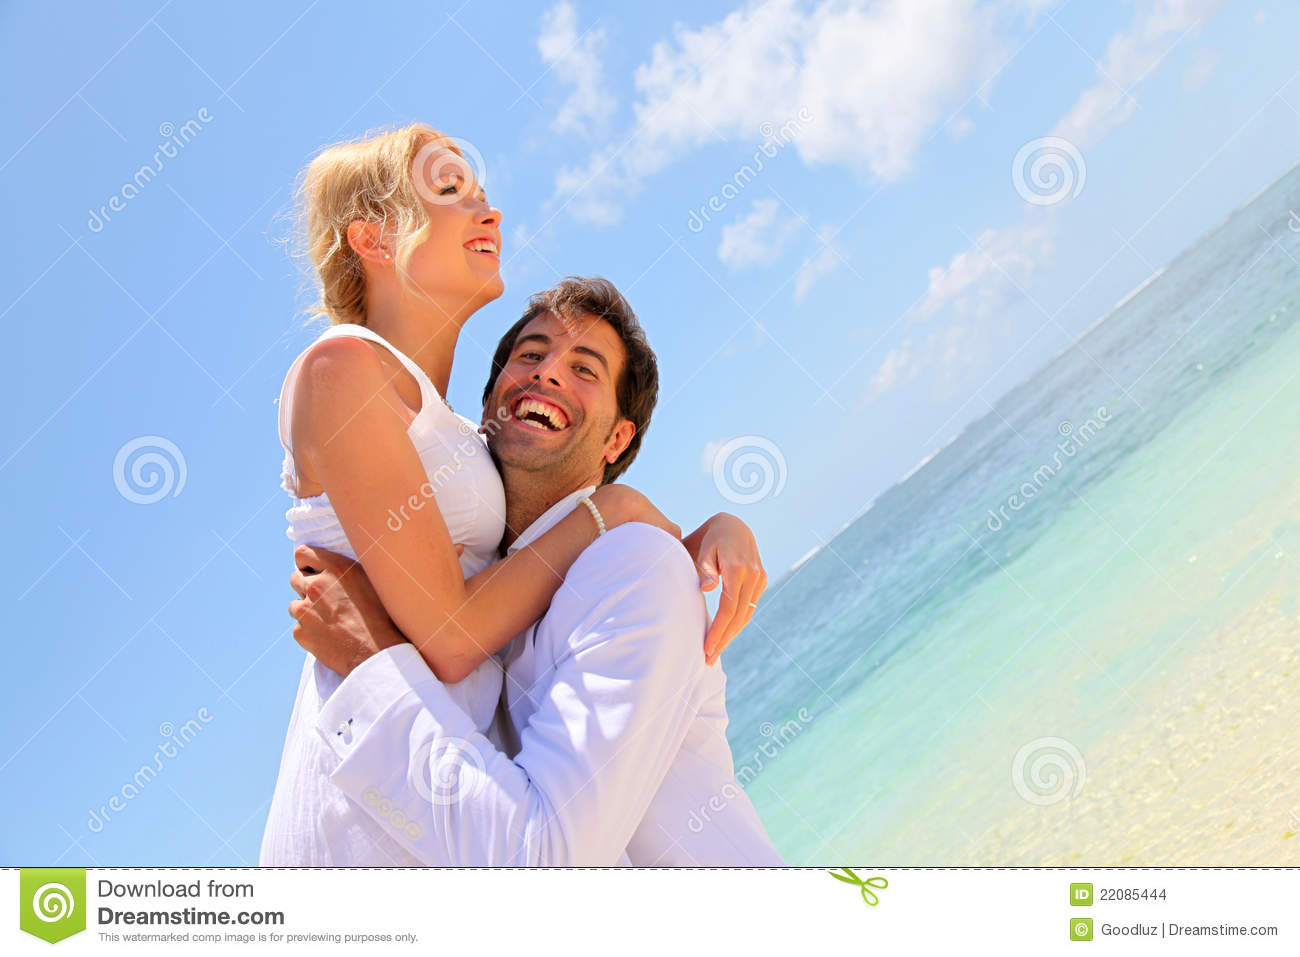 Just Married Couple Having Fun Stock Photo